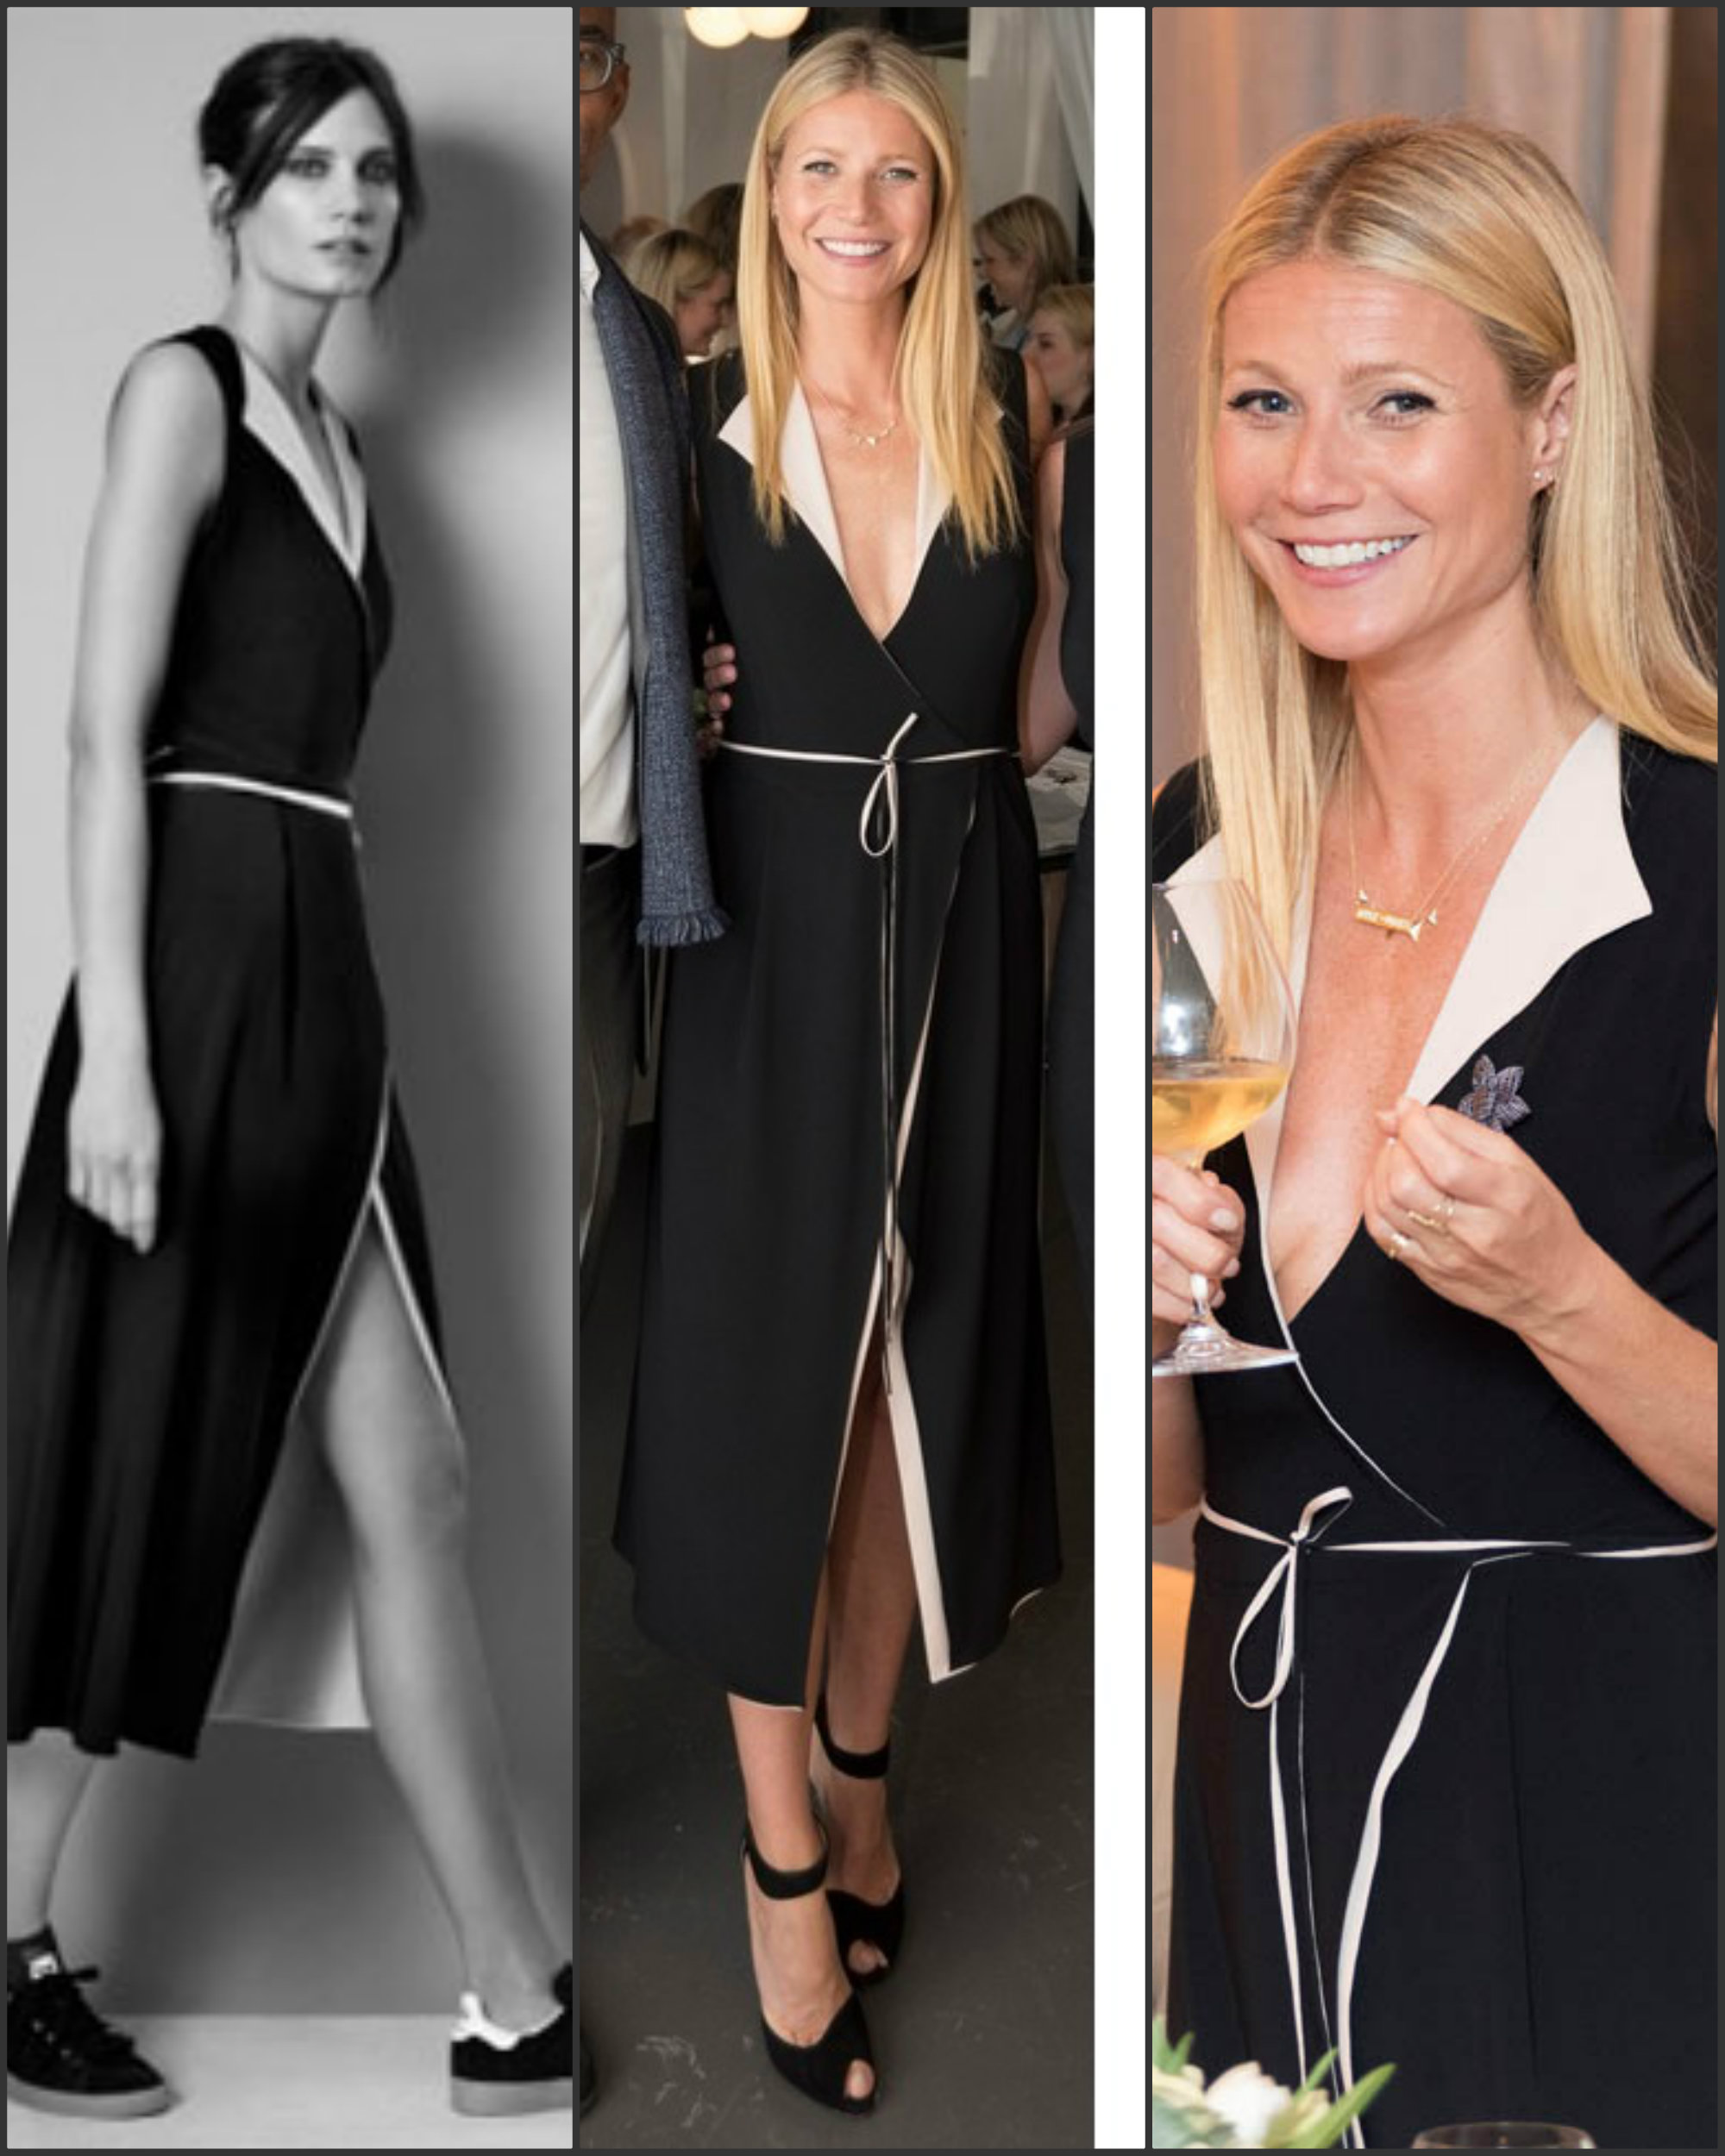 Gwyneth-Paltrow-in-Atea-Oceanie-at-Goop-Pop-up-store-launch